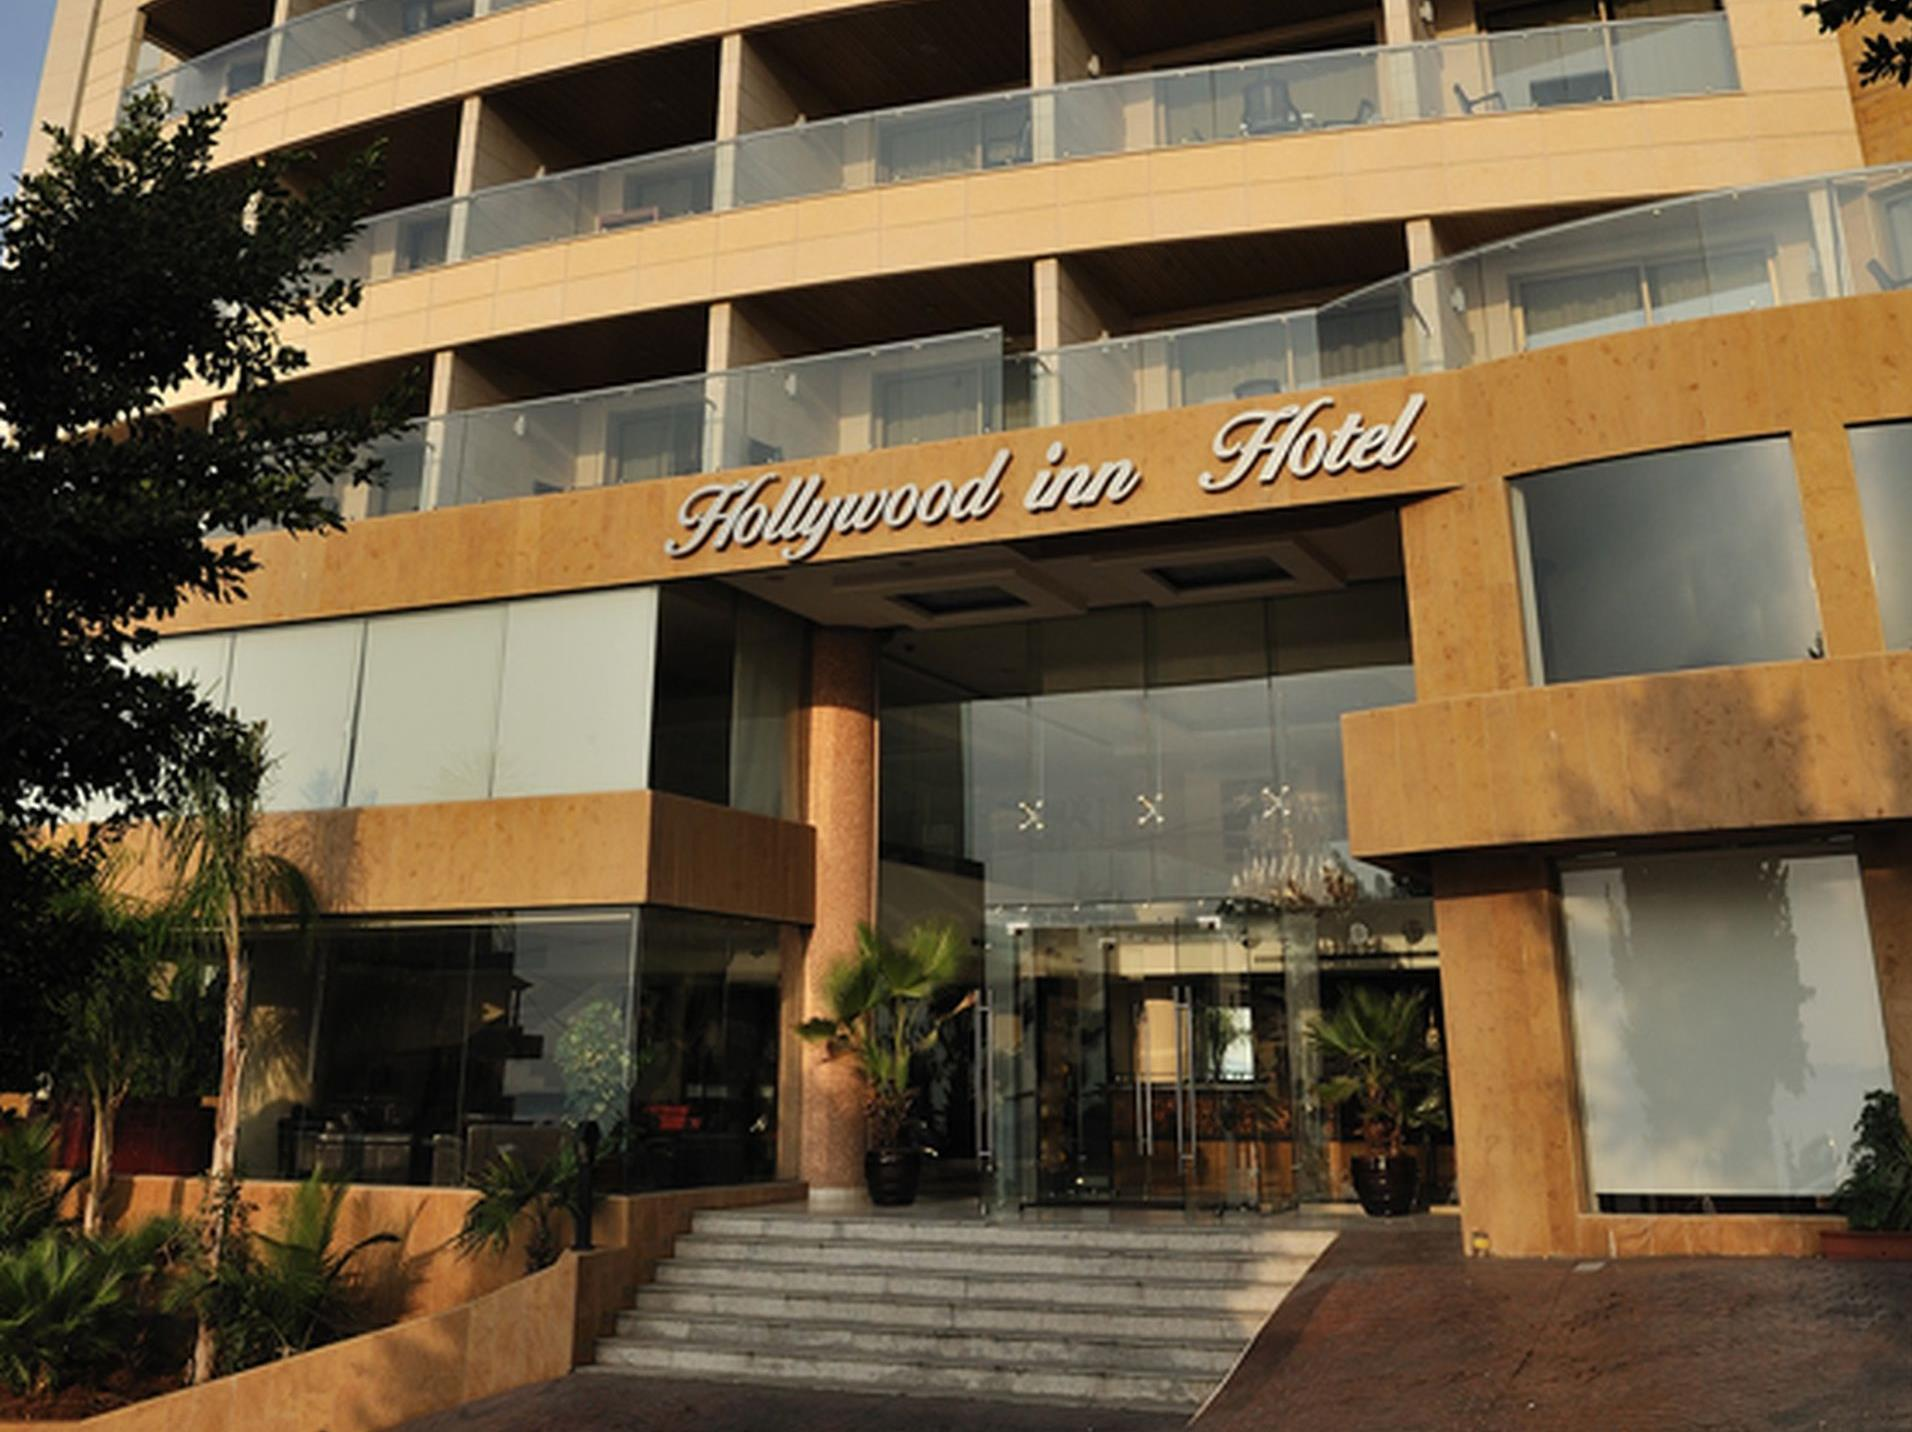 Hollywood Inn Hotel - Hotels and Accommodation in Lebanon, Middle East